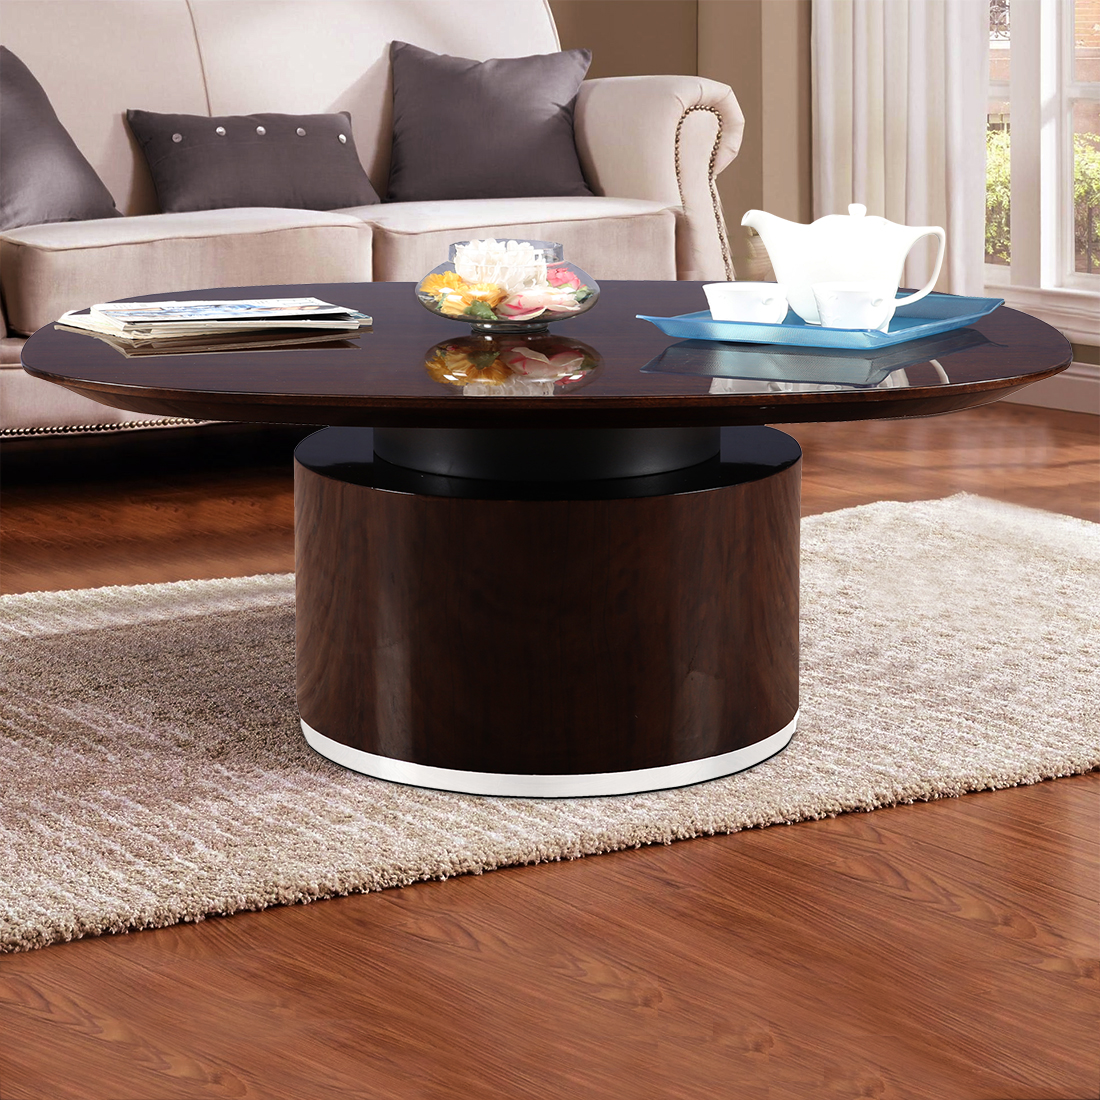 Bernard Engineered Wood High Gloss Center Table in High Gloss Golden Teak Colour by HomeTown